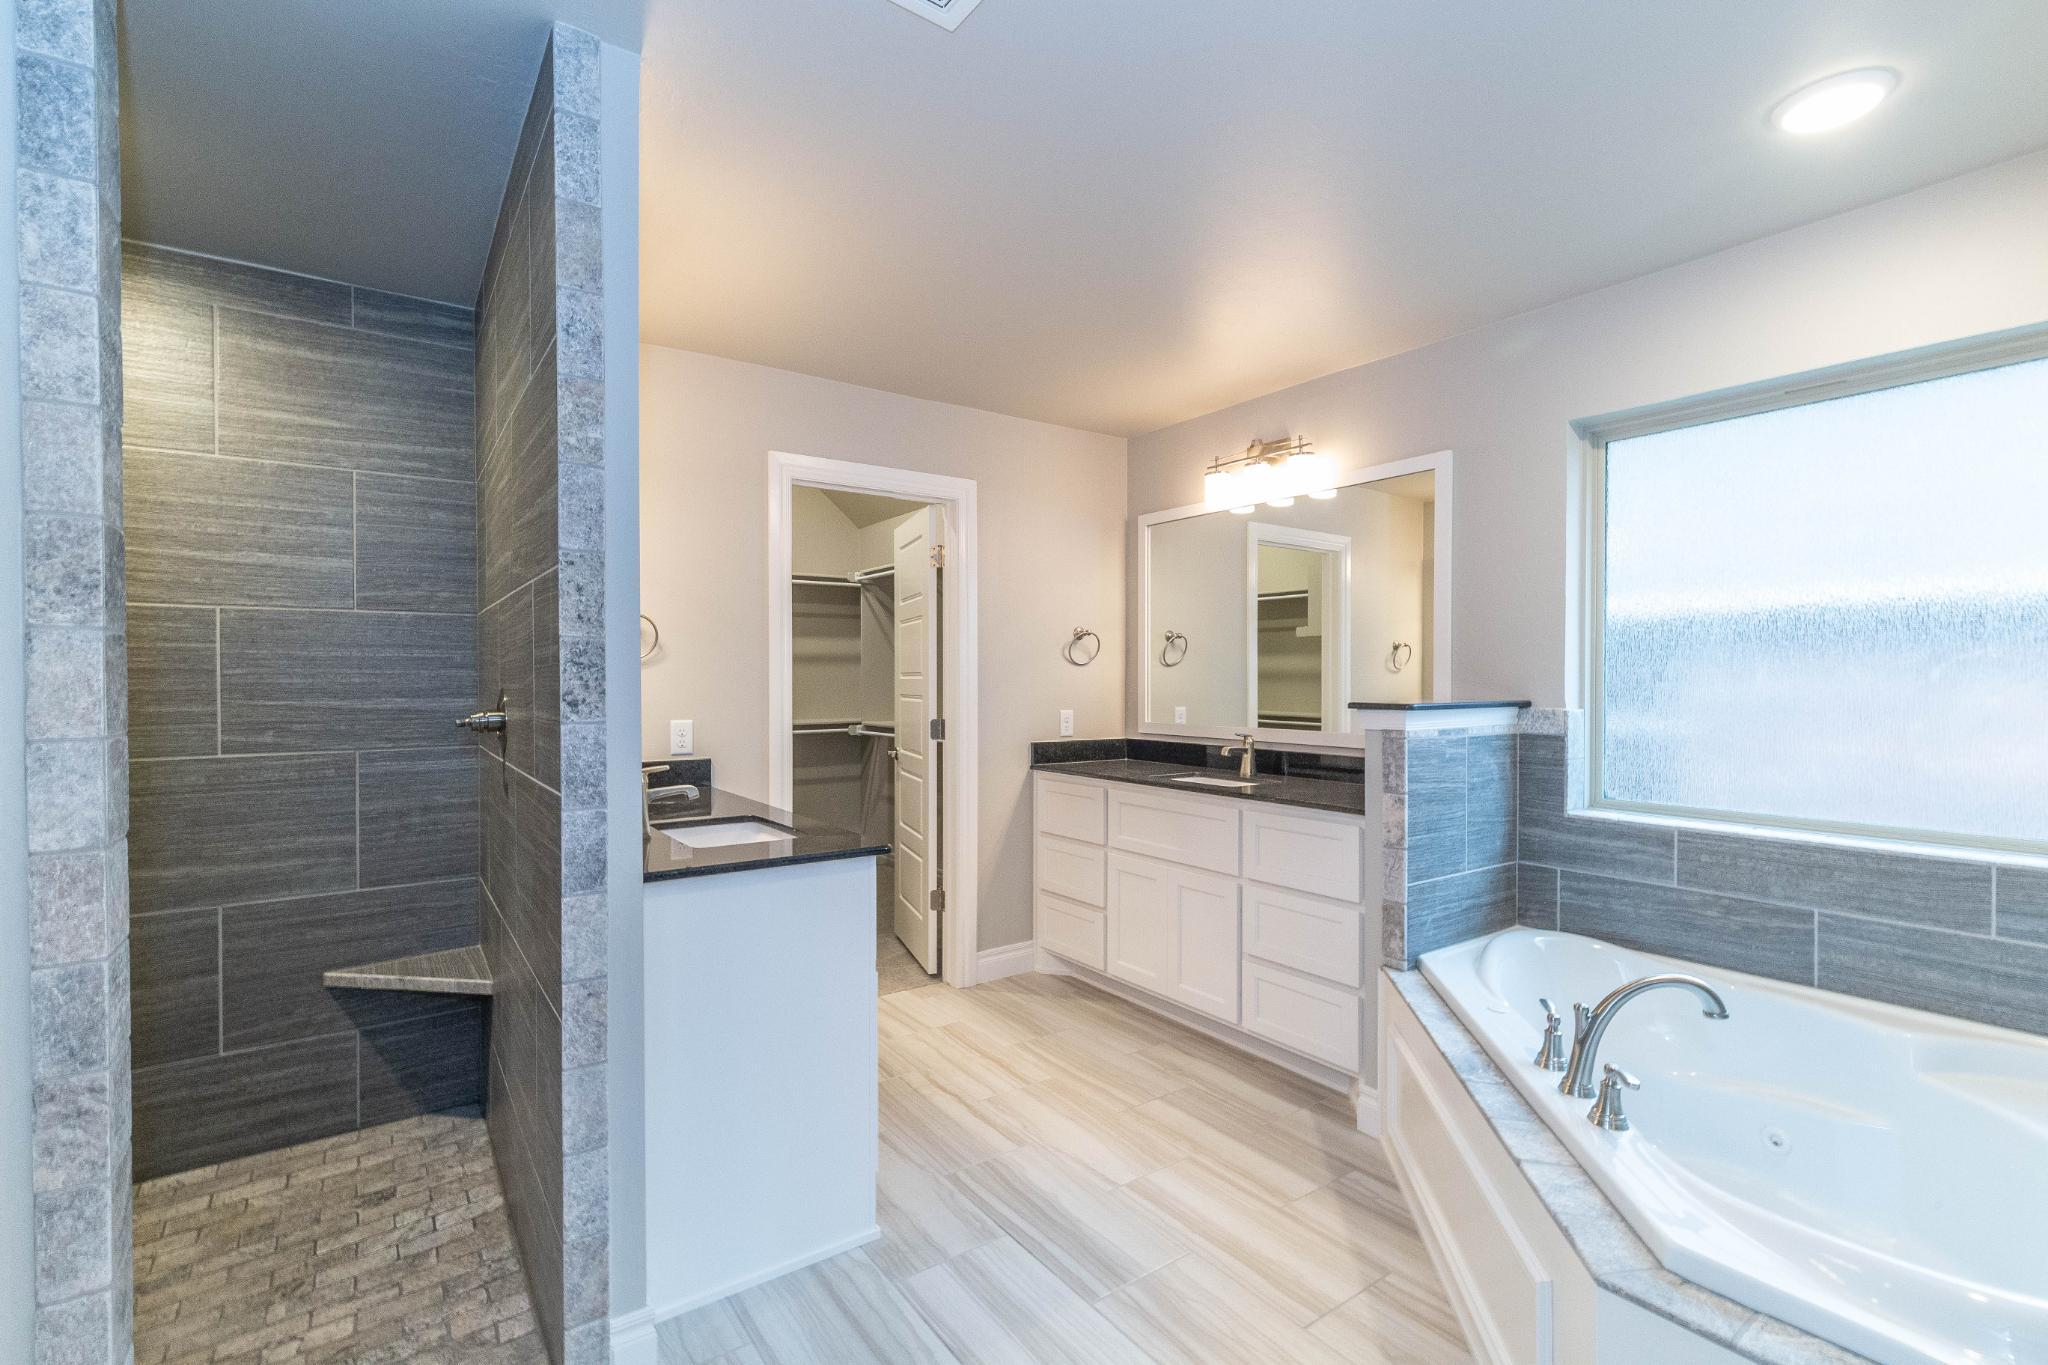 Bathroom featured in the Cornerstone Bonus Room 2 By Homes By Taber in Oklahoma City, OK